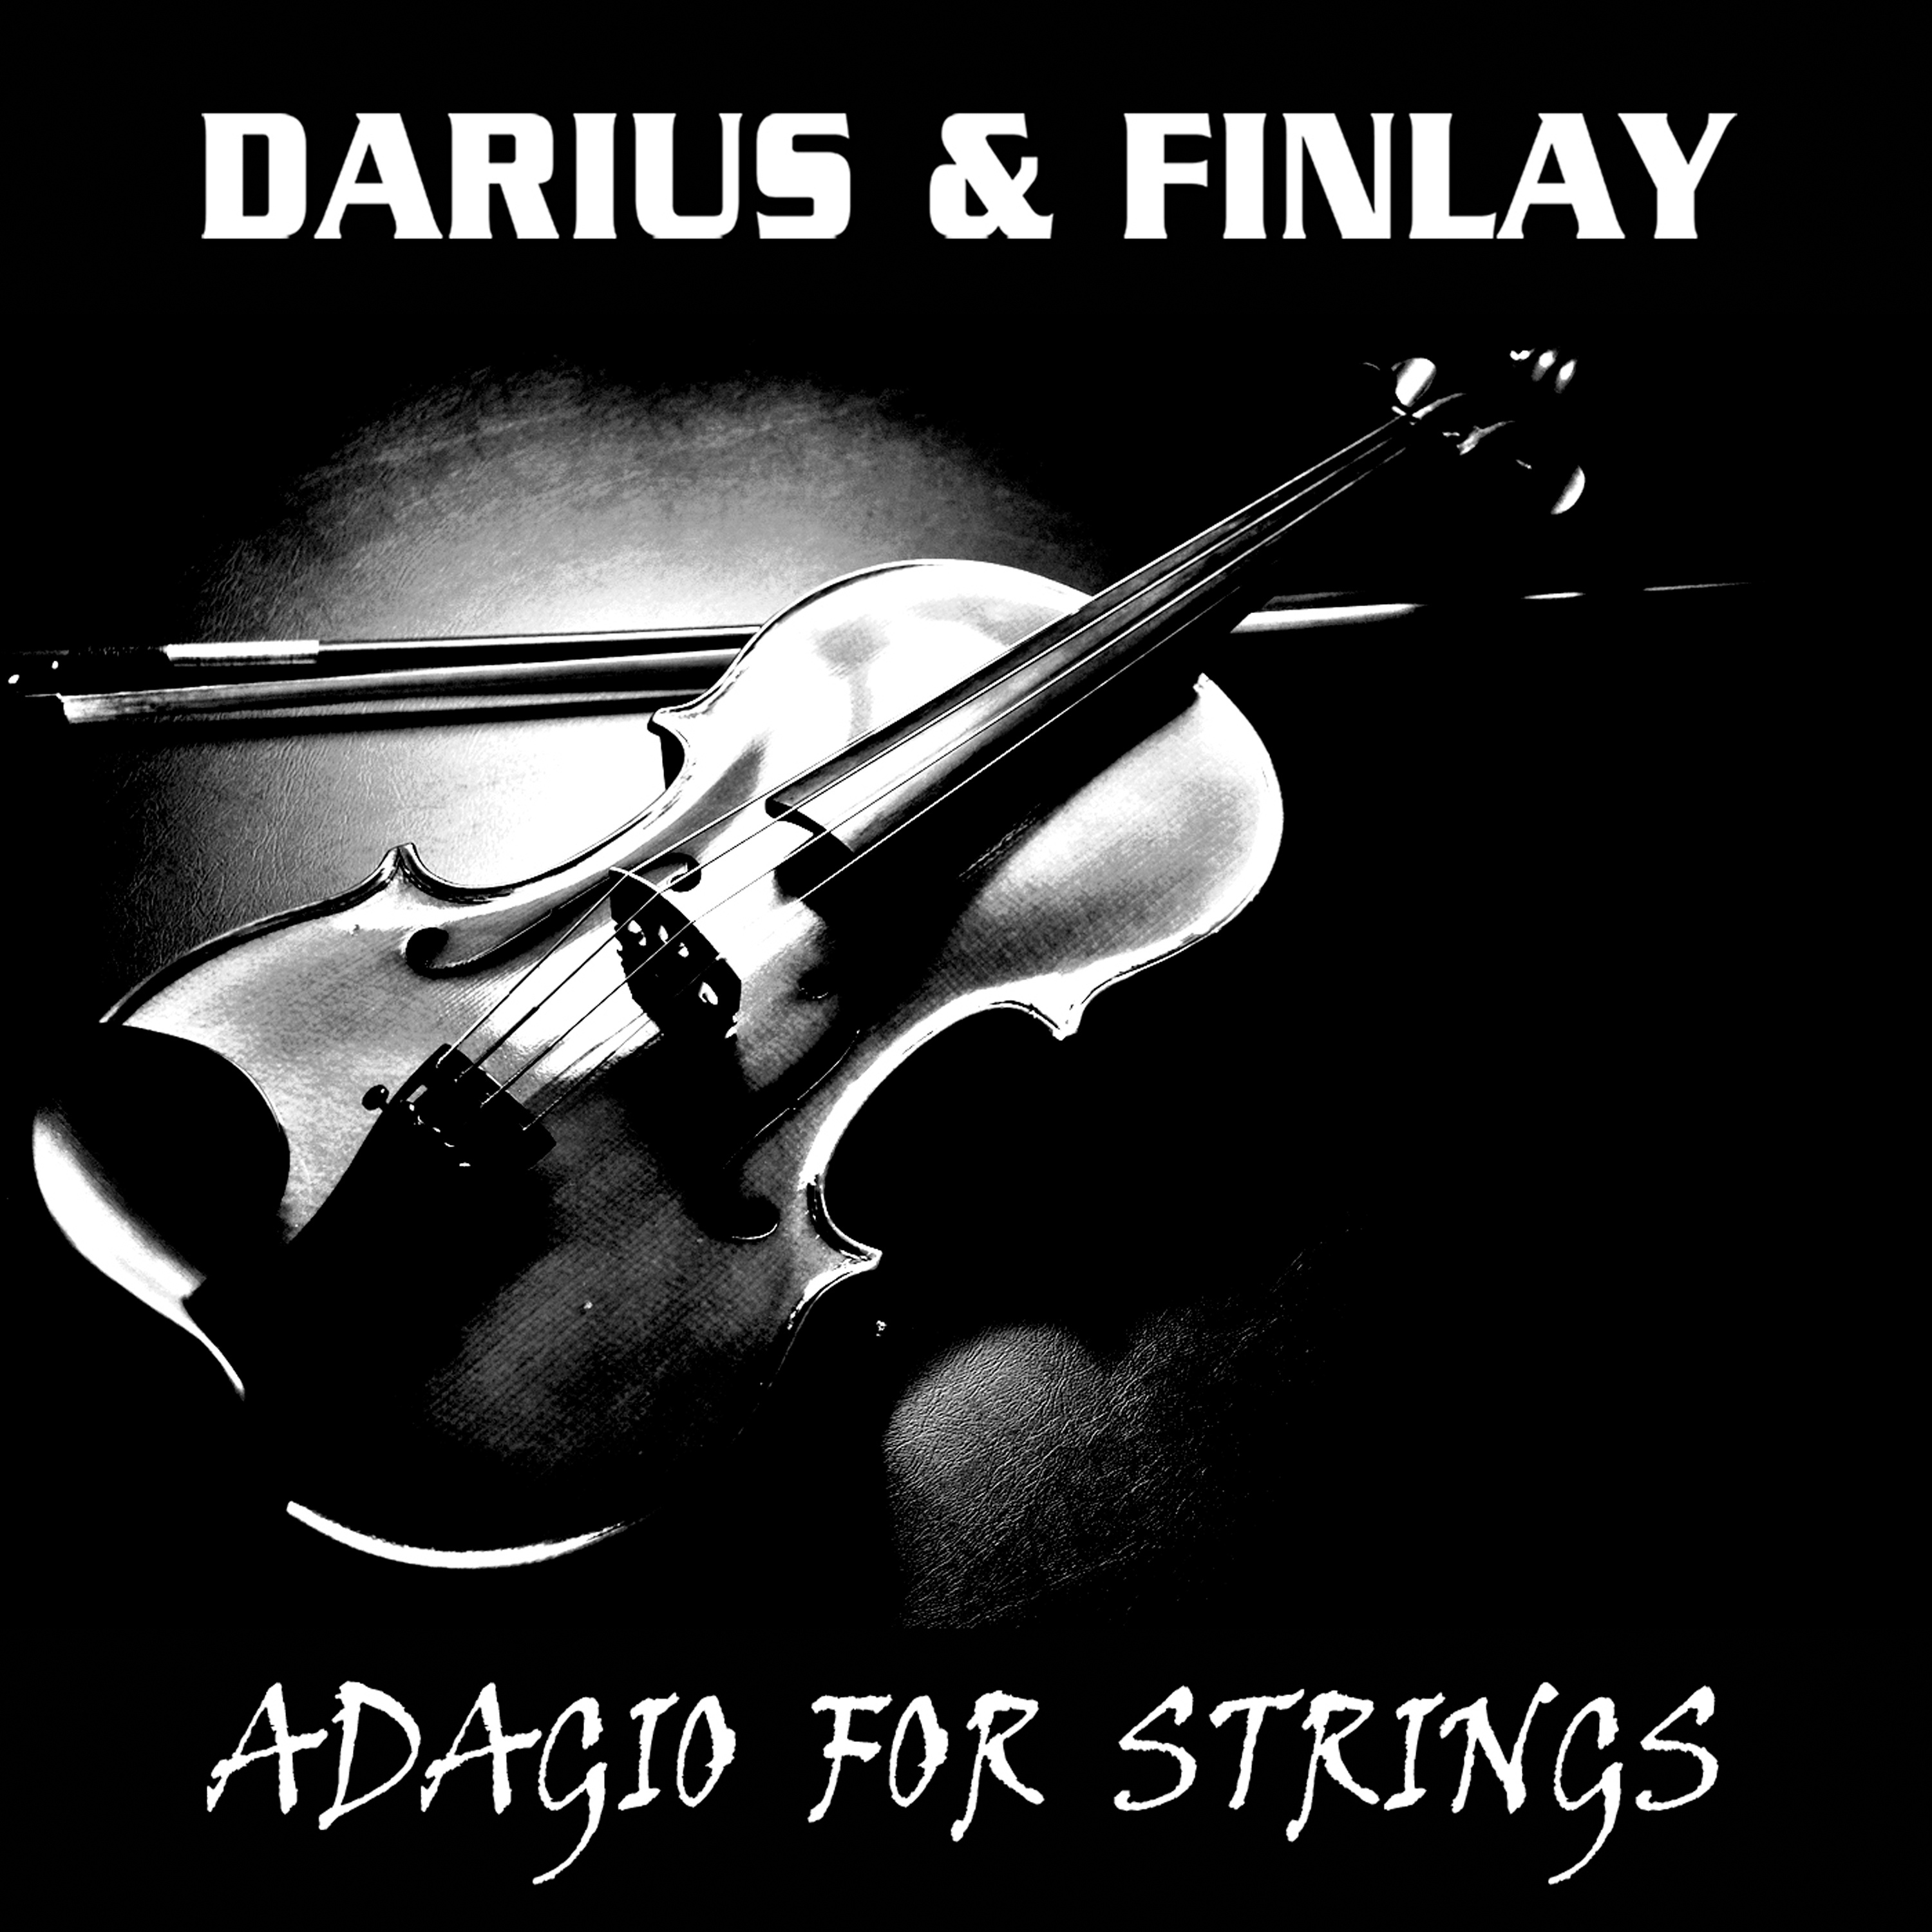 DARIUS & FINLAY - Adagio For Strings (Hear Me Play Me)